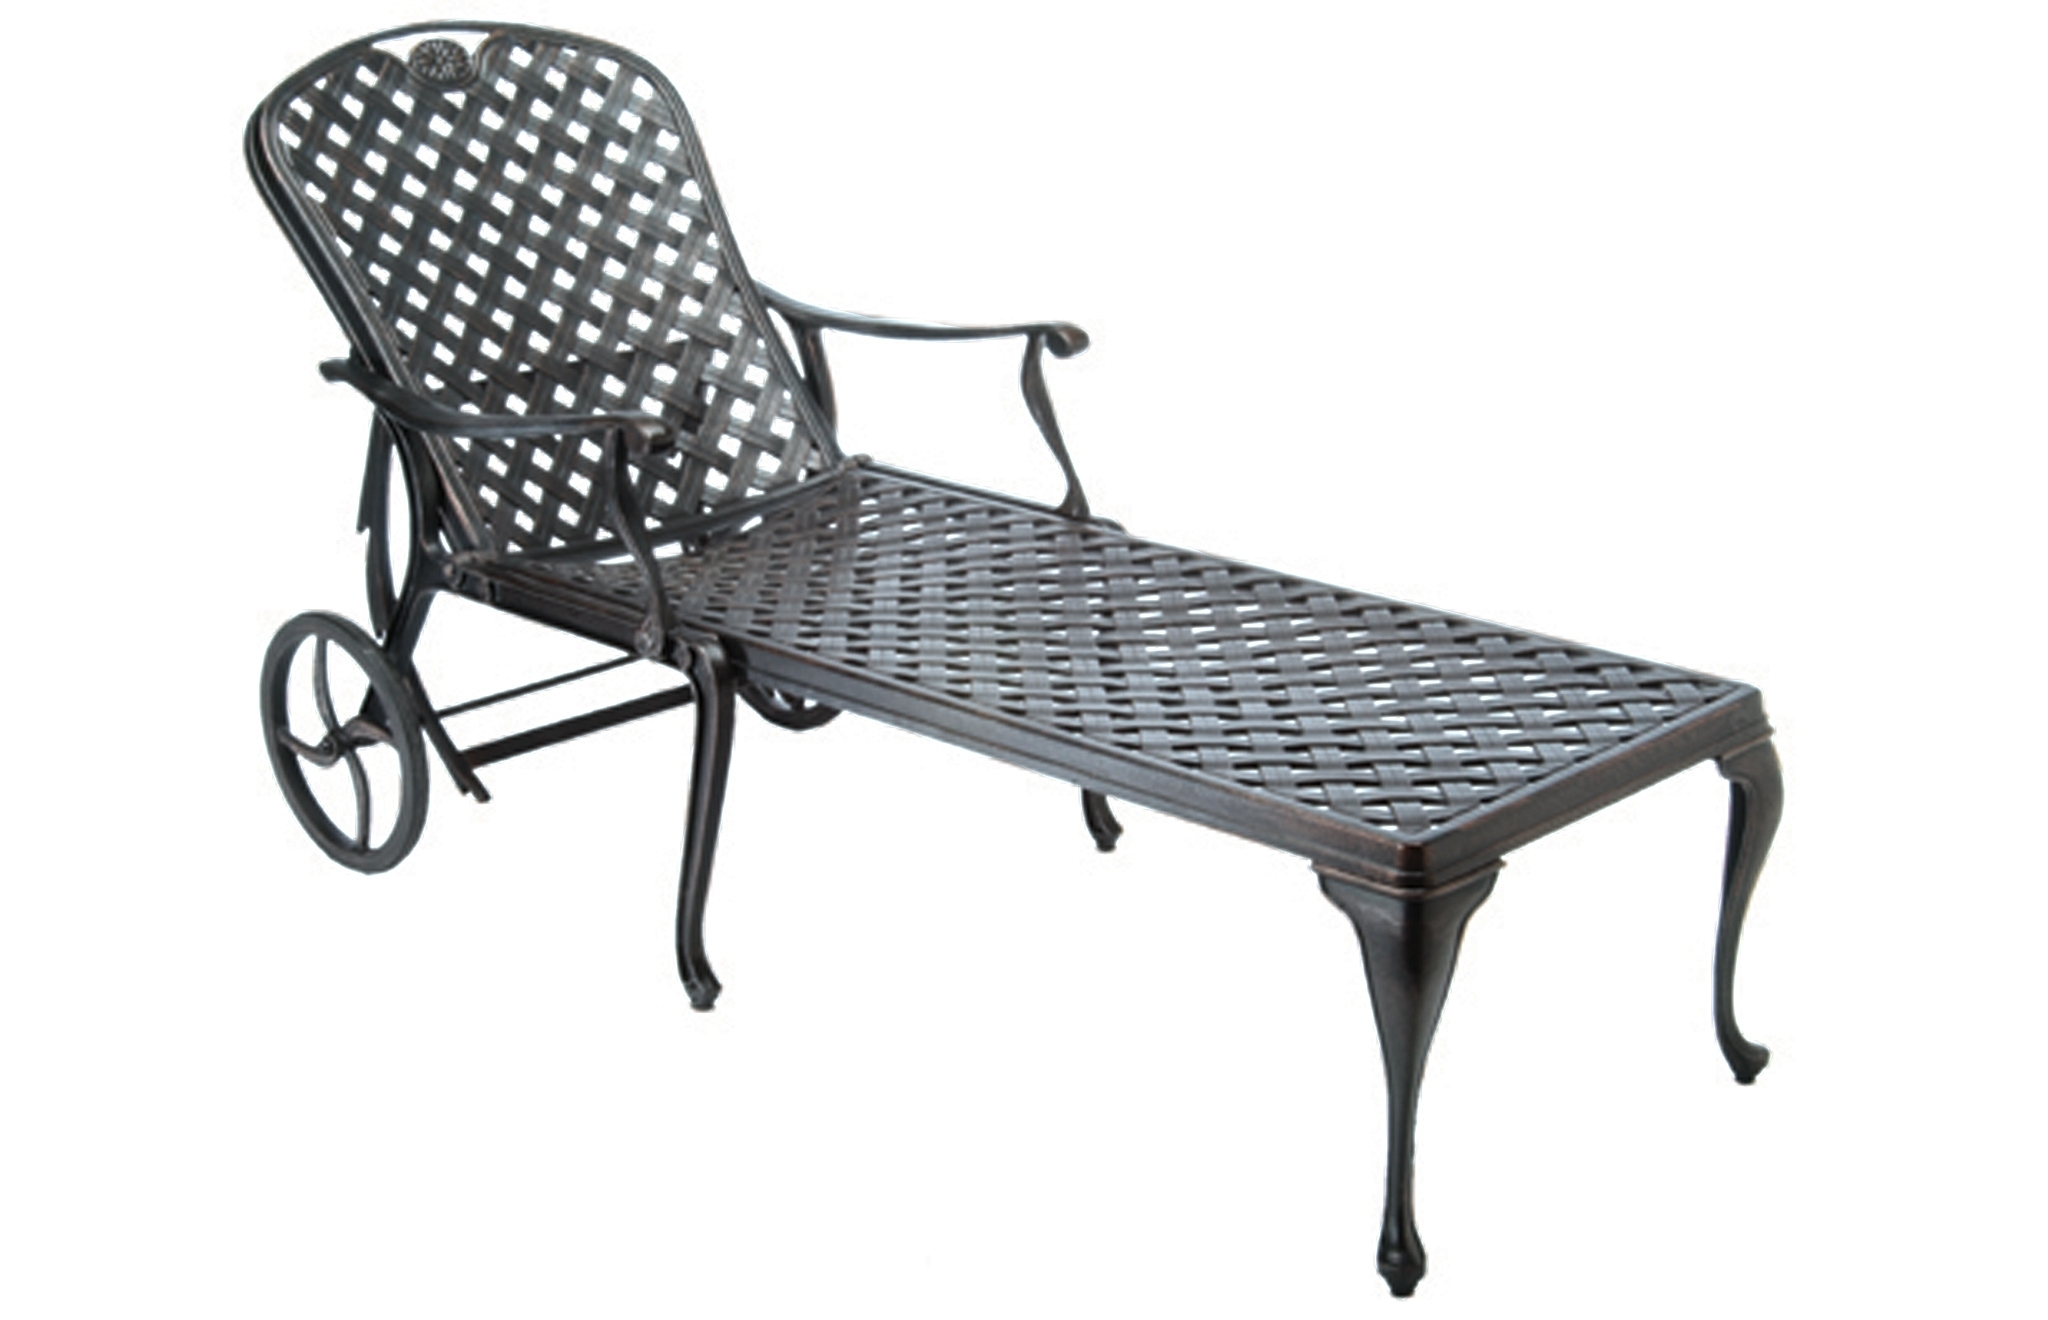 2018 Fall: The Best Season For Entertaining With Outdoor Furniture Within Cast Aluminum Chaise Lounges (View 2 of 15)